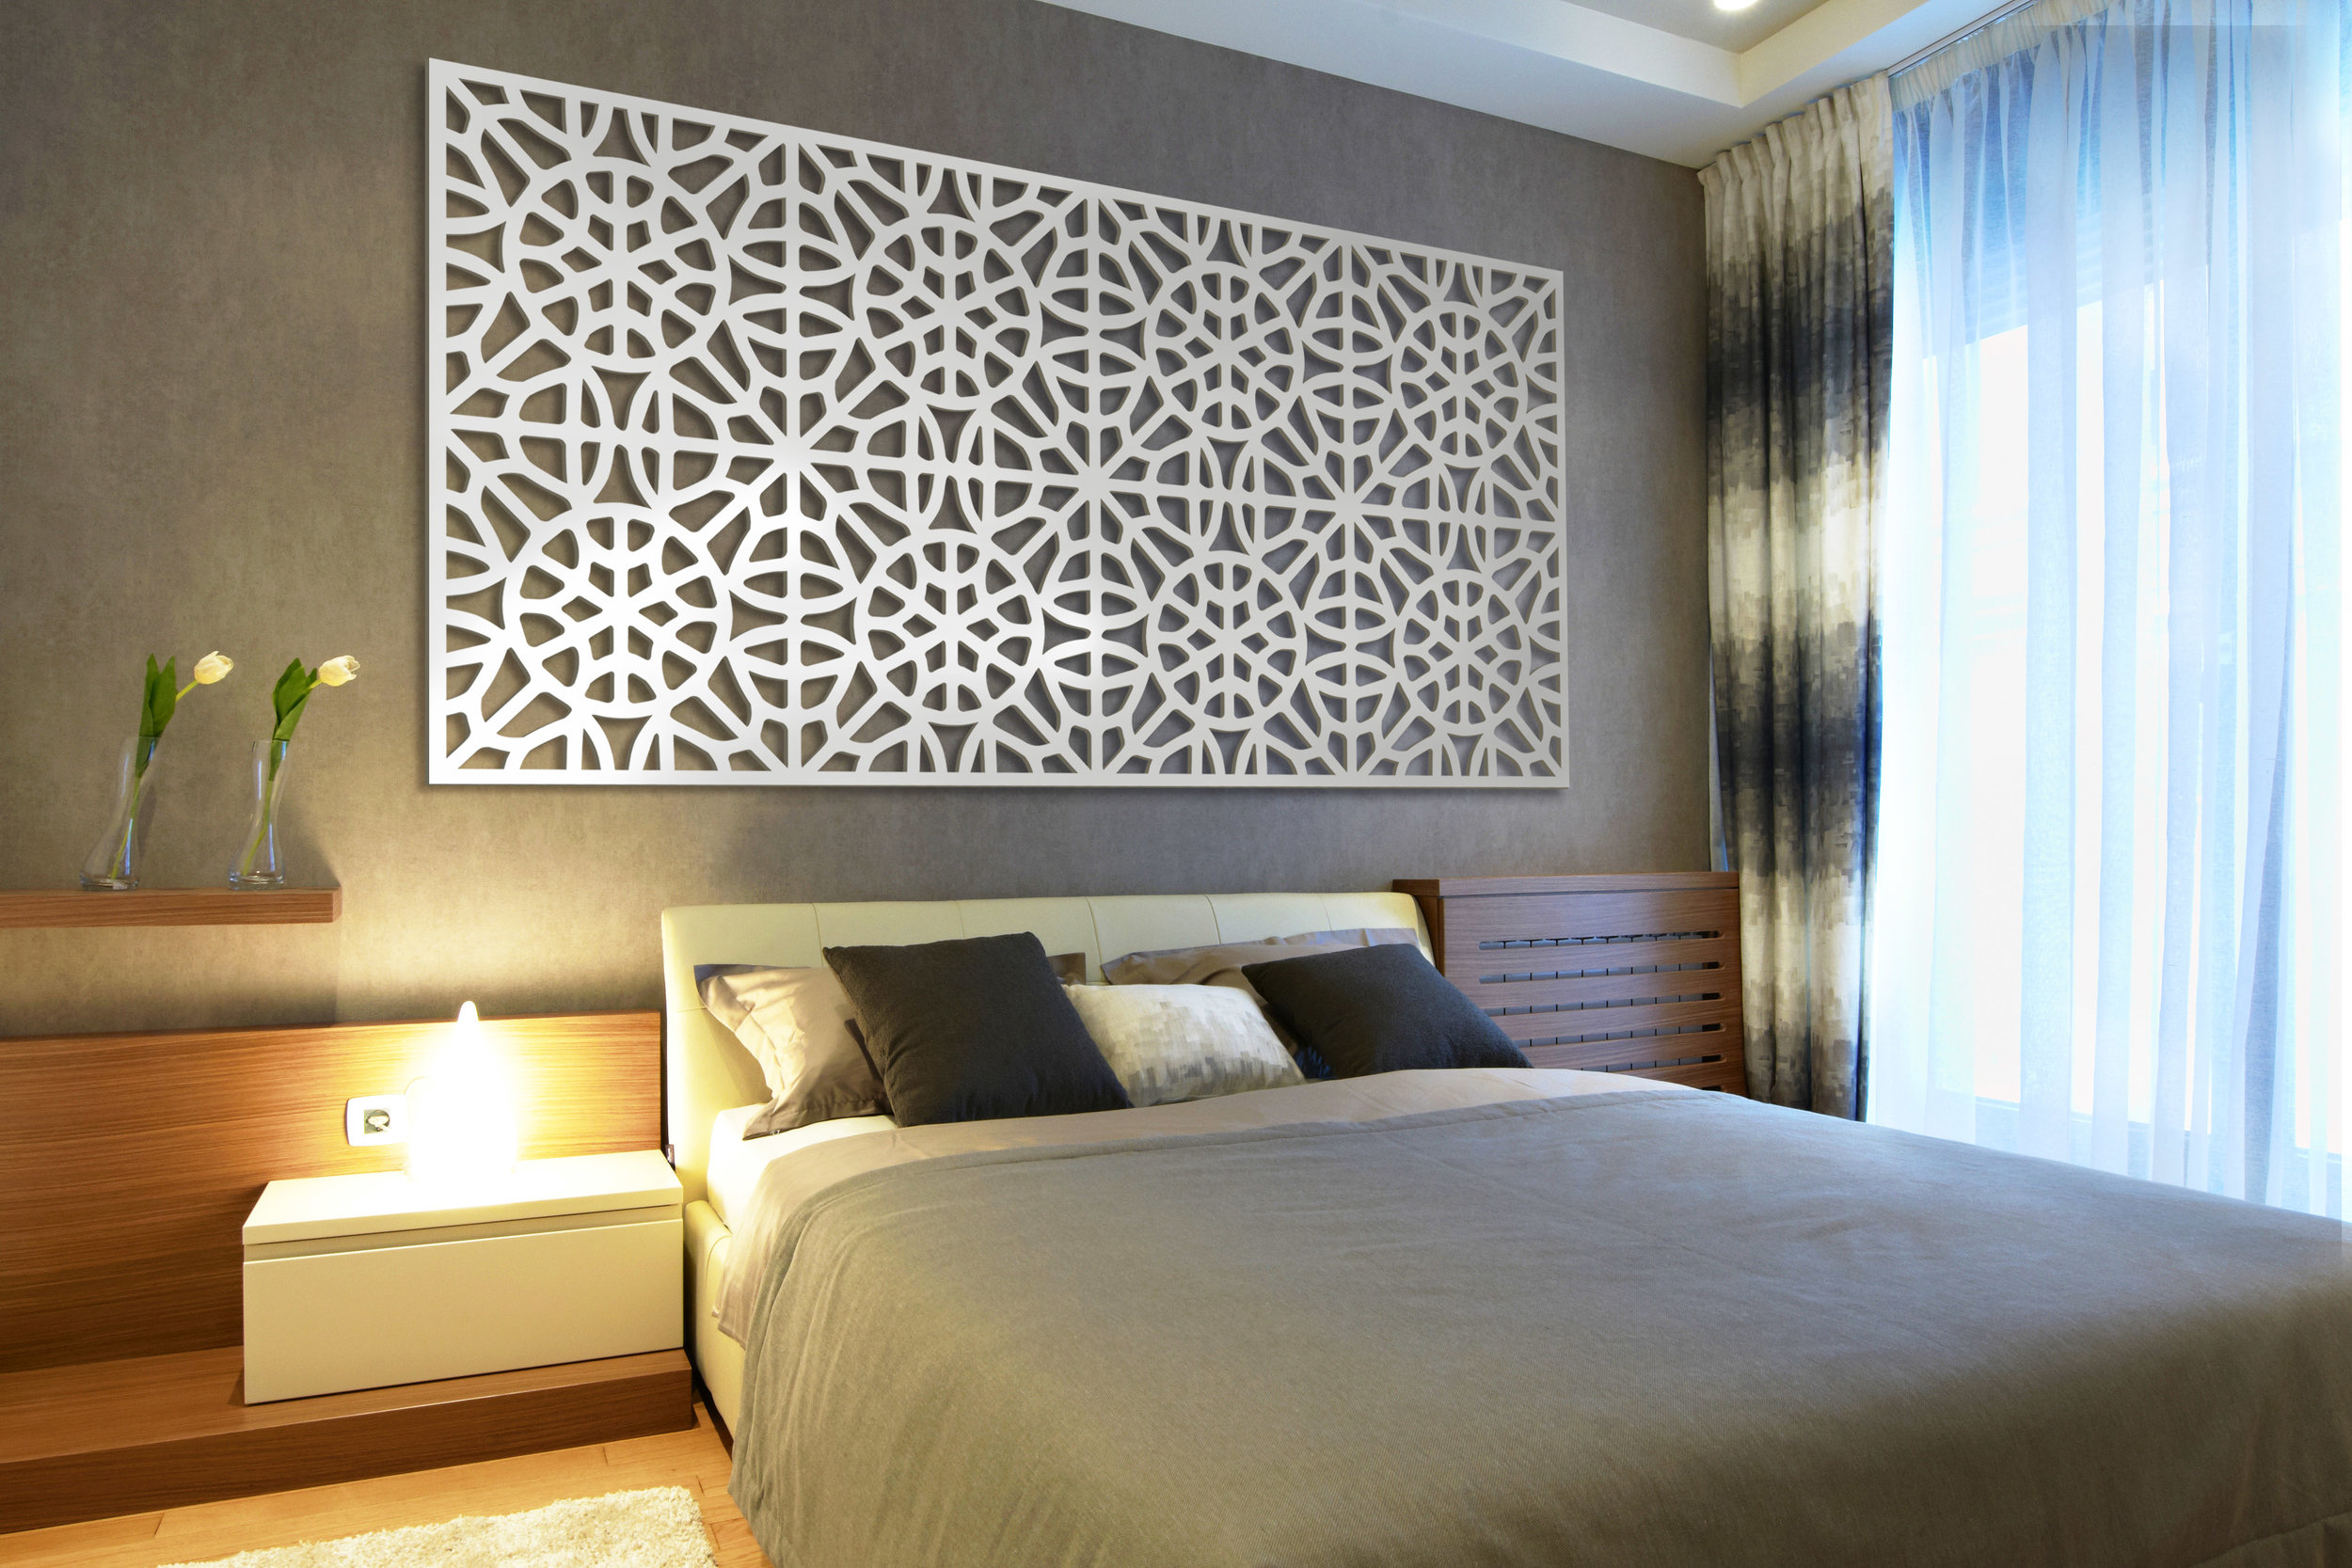 Installation Rendering C   Brooklyn decorative hotel wall panel - painted